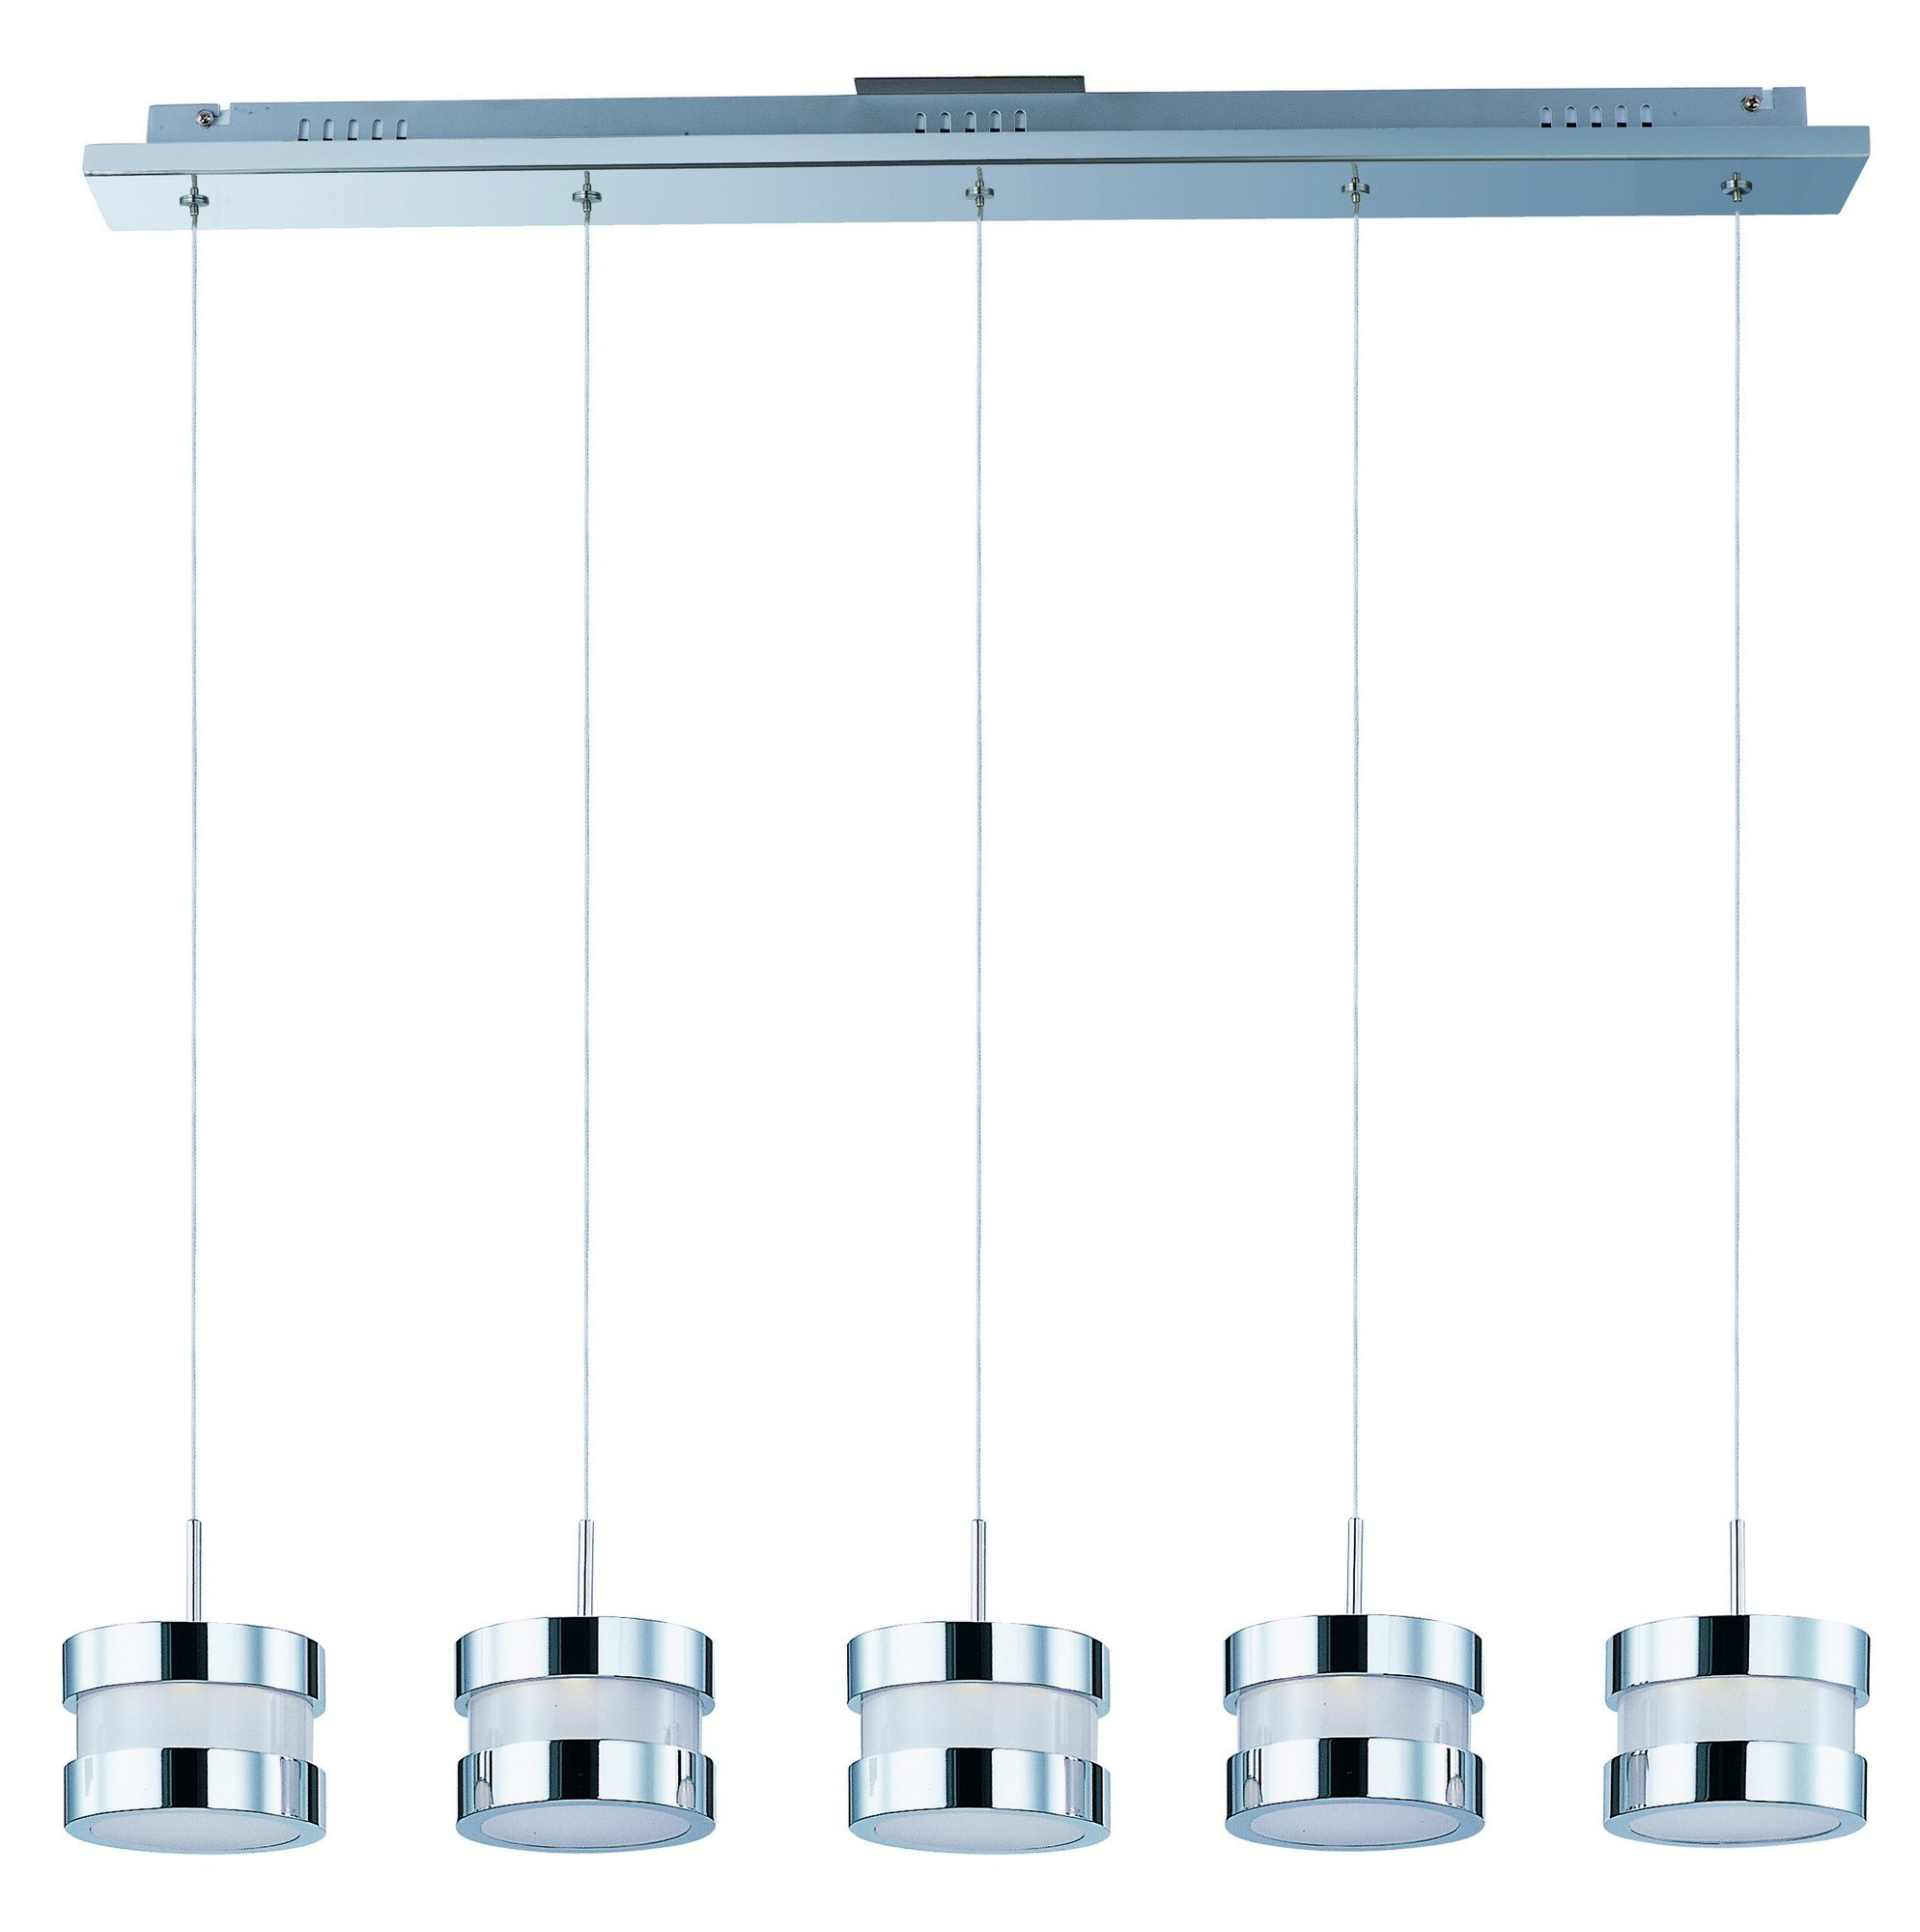 ET2 E22685-01PC Disco 5-Light LED Linear Pendant, Polished Chrome Finish, White Glass, PCB LED Bulb, .12W Max., Dry Safety Rated, 3000K Color Temp., Low-Voltage Electronic Dimmer, Glass Shade Material, 785 Rated Lumens